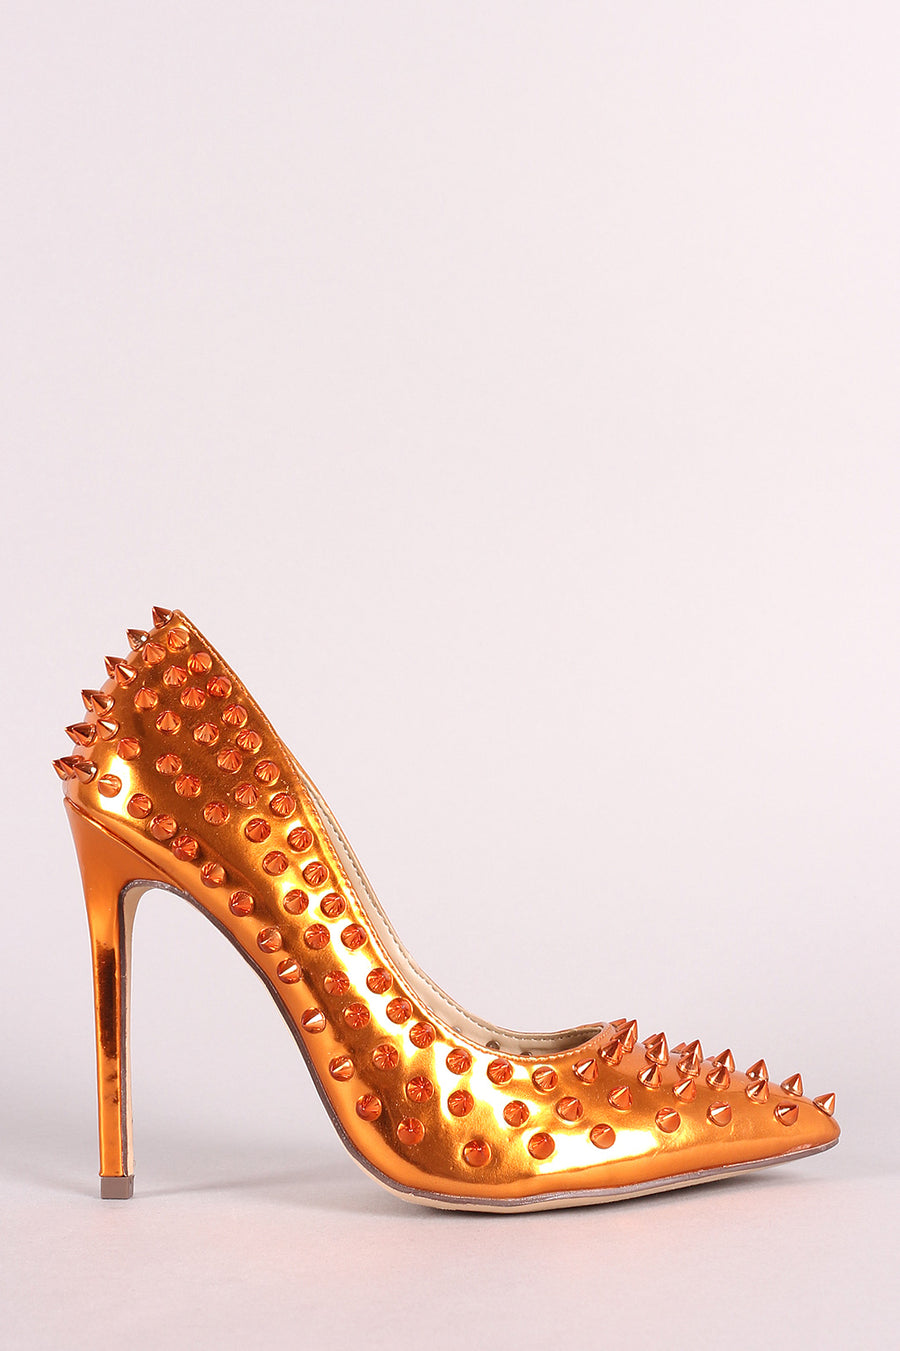 Tessa Spike Studs Patent Pointy Toe Stiletto Pump Photo - Plush Boutique